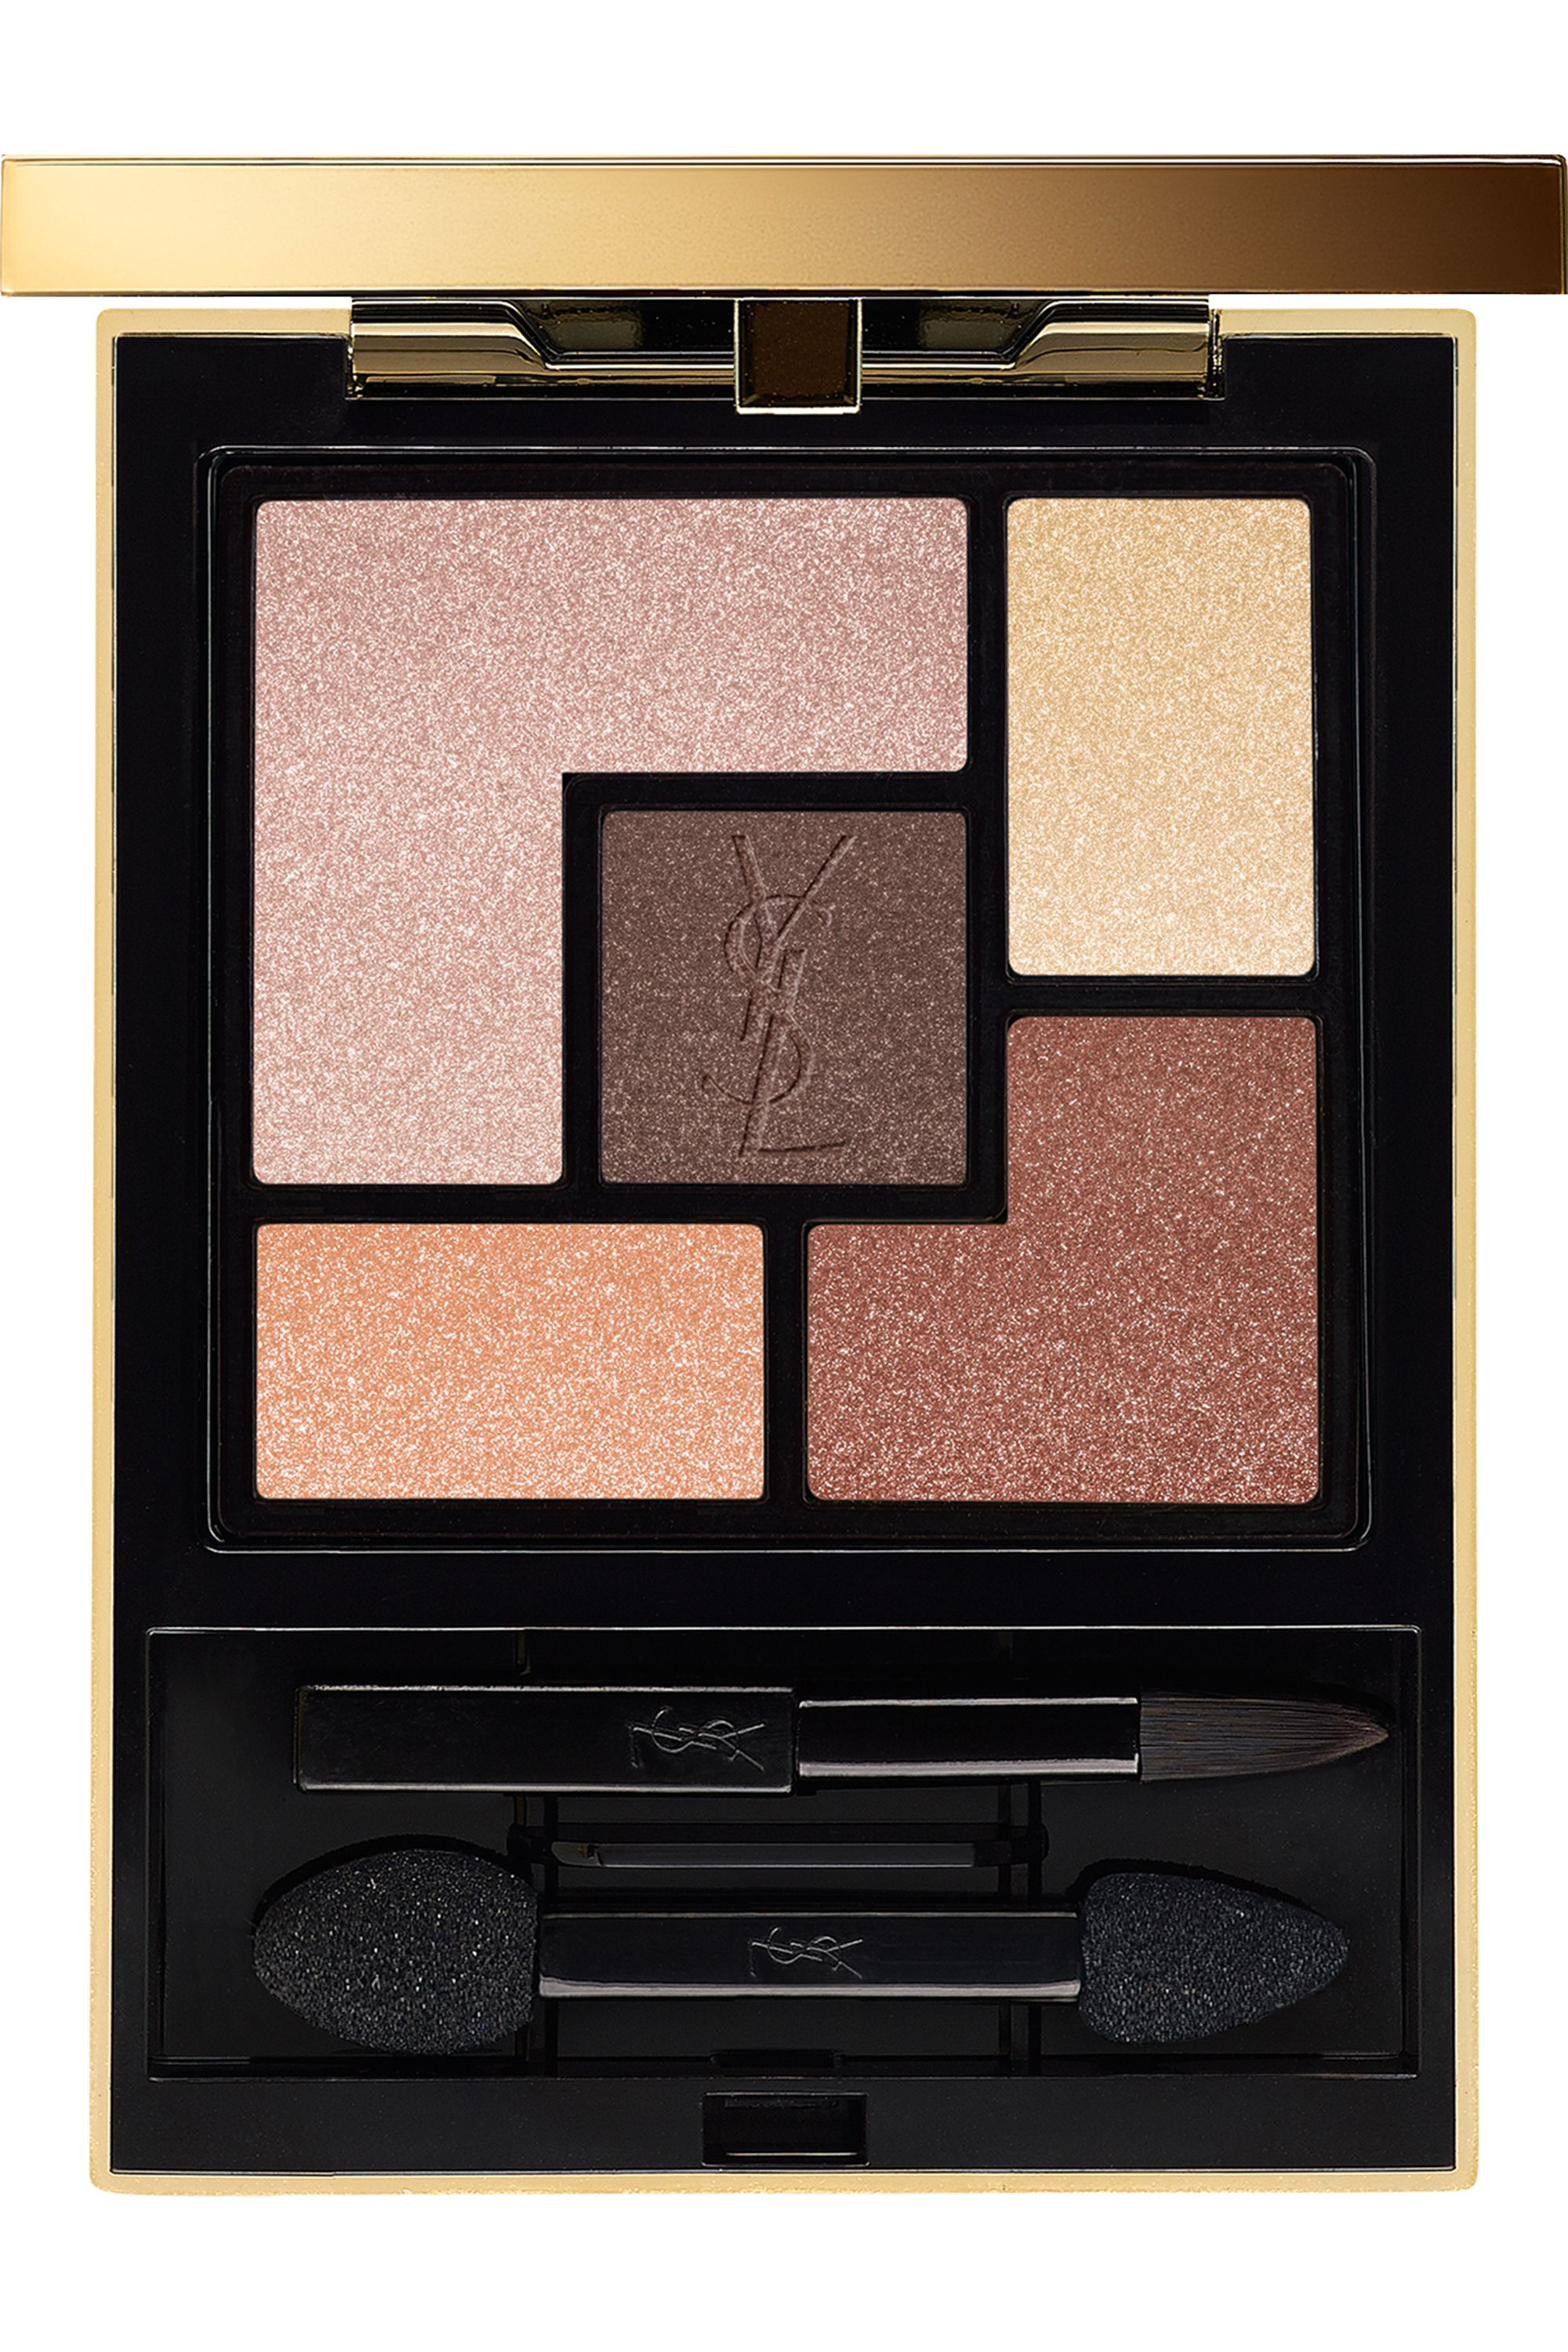 Blissim : Yves Saint Laurent - Couture Eye Contouring - N°14 Rosy Glow